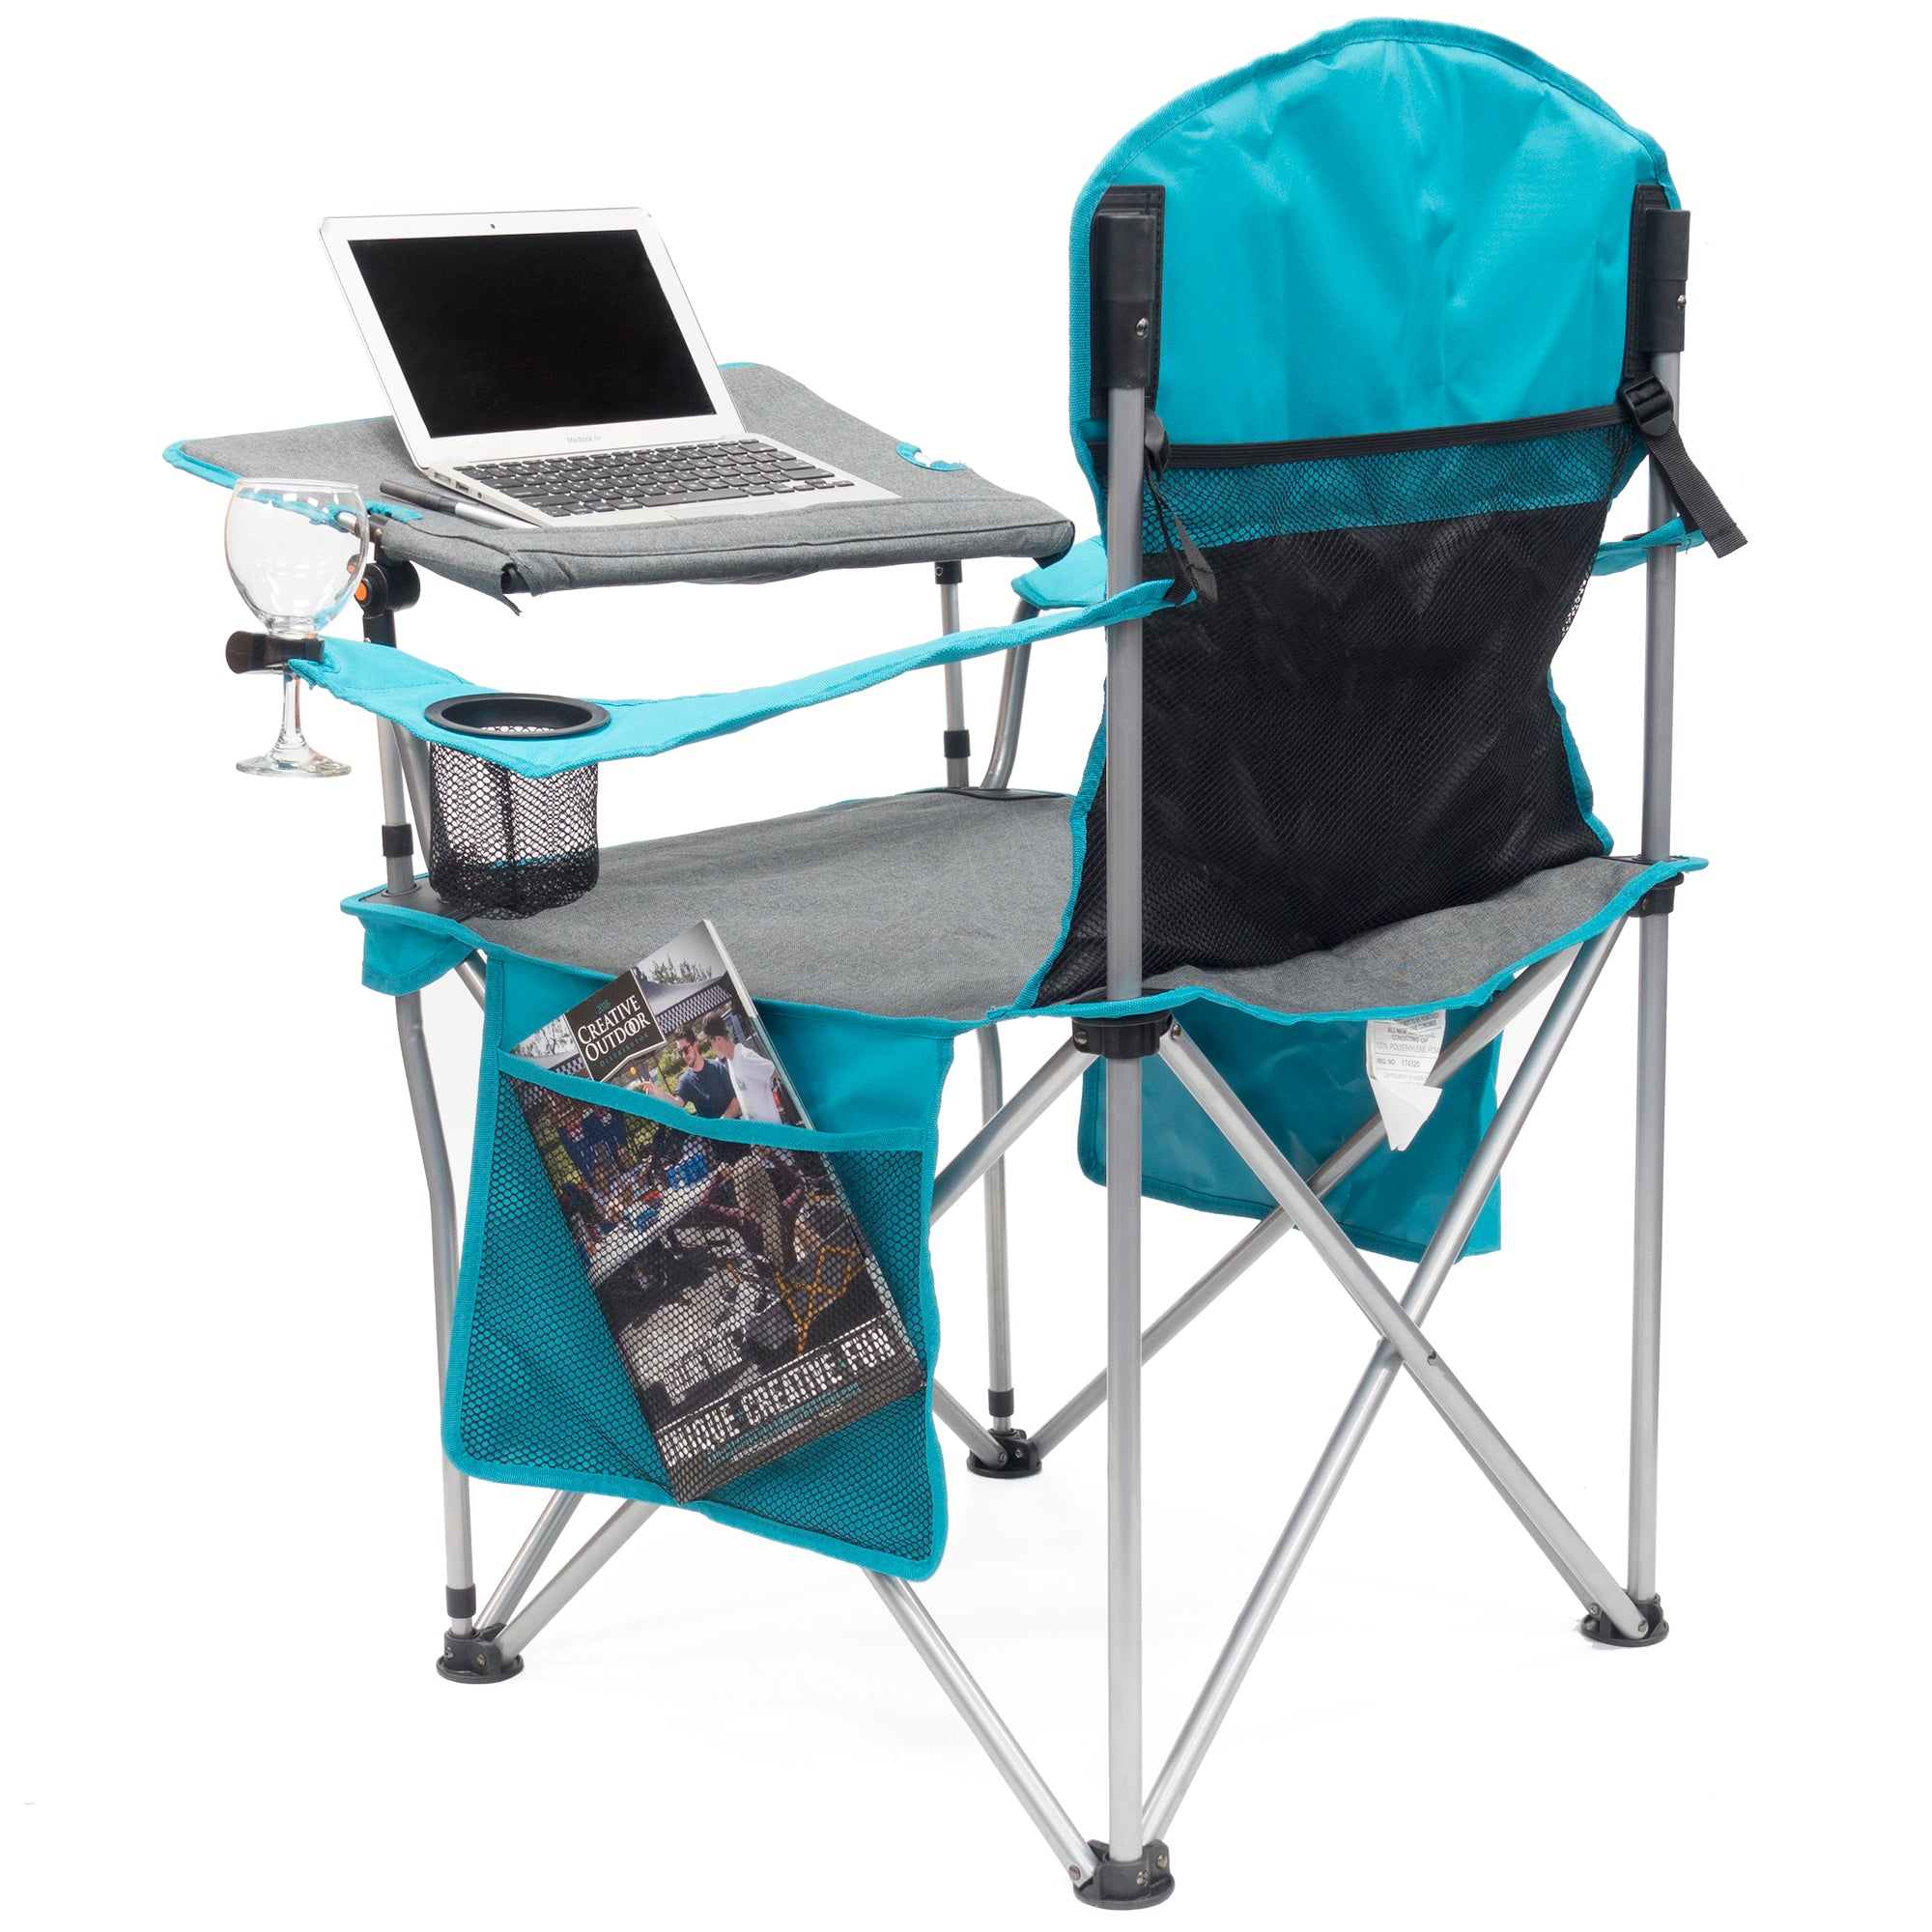 iChair Folding Wine Chair with Adjustable Tilt Table - Teal/Gray